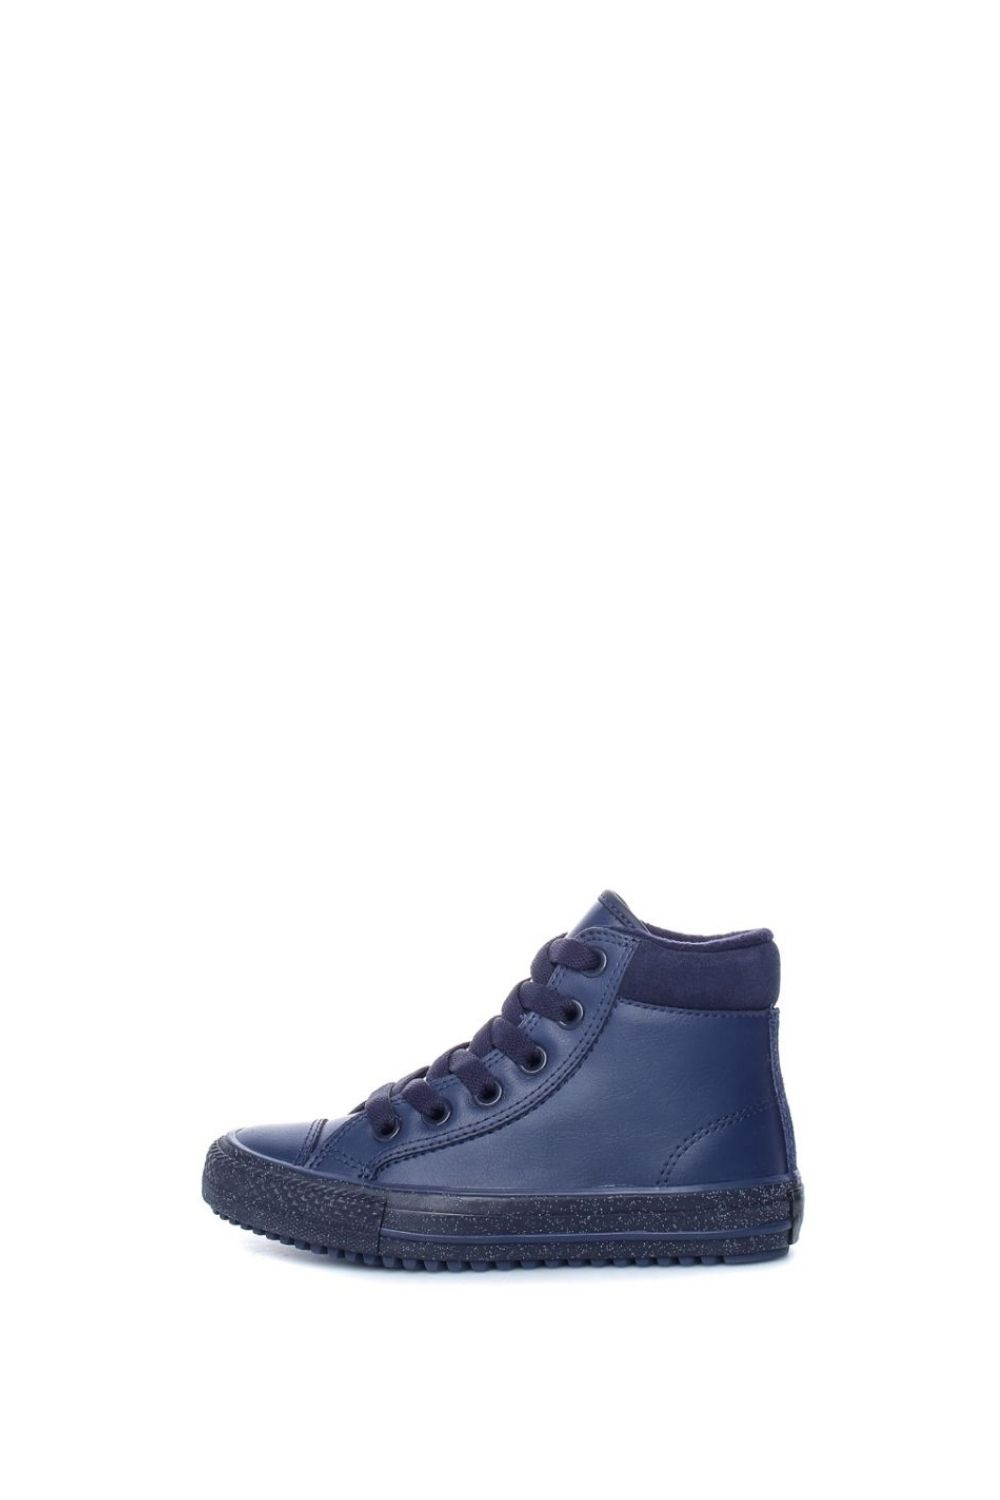 CONVERSE – Παιδικά ψηλά sneakers CONVERSE Chuck Taylor All Star μπλε